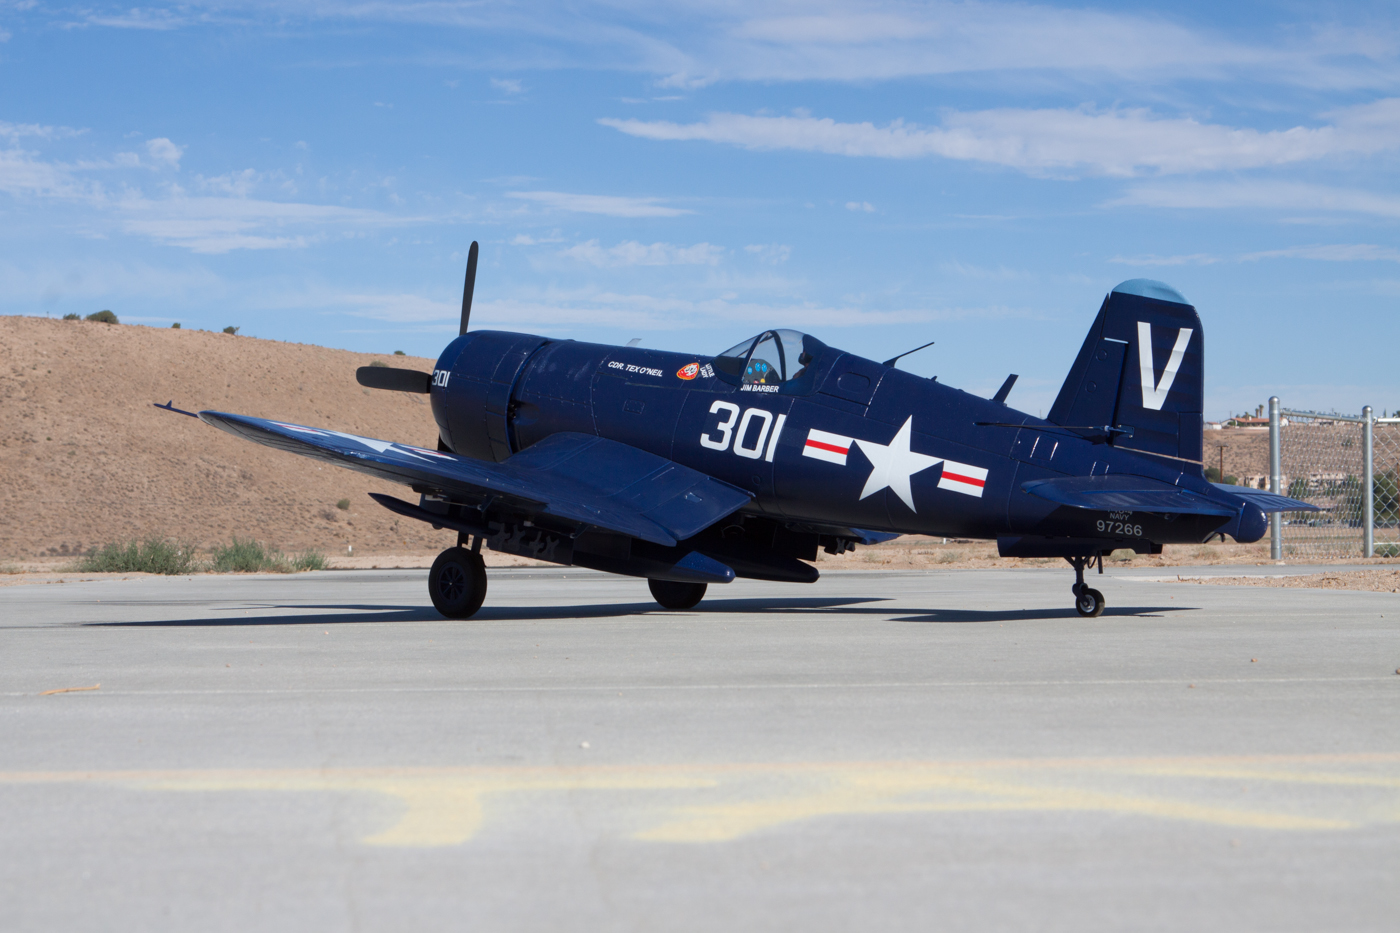 rc control planes with Diamond Hobbyfms F4u Corsair on Rc Administradores Y Directivos together with Planes together with Rc Gliders further Watch likewise Tiny Rc P 51d Mustang Tips The Scales At 3 Grams.